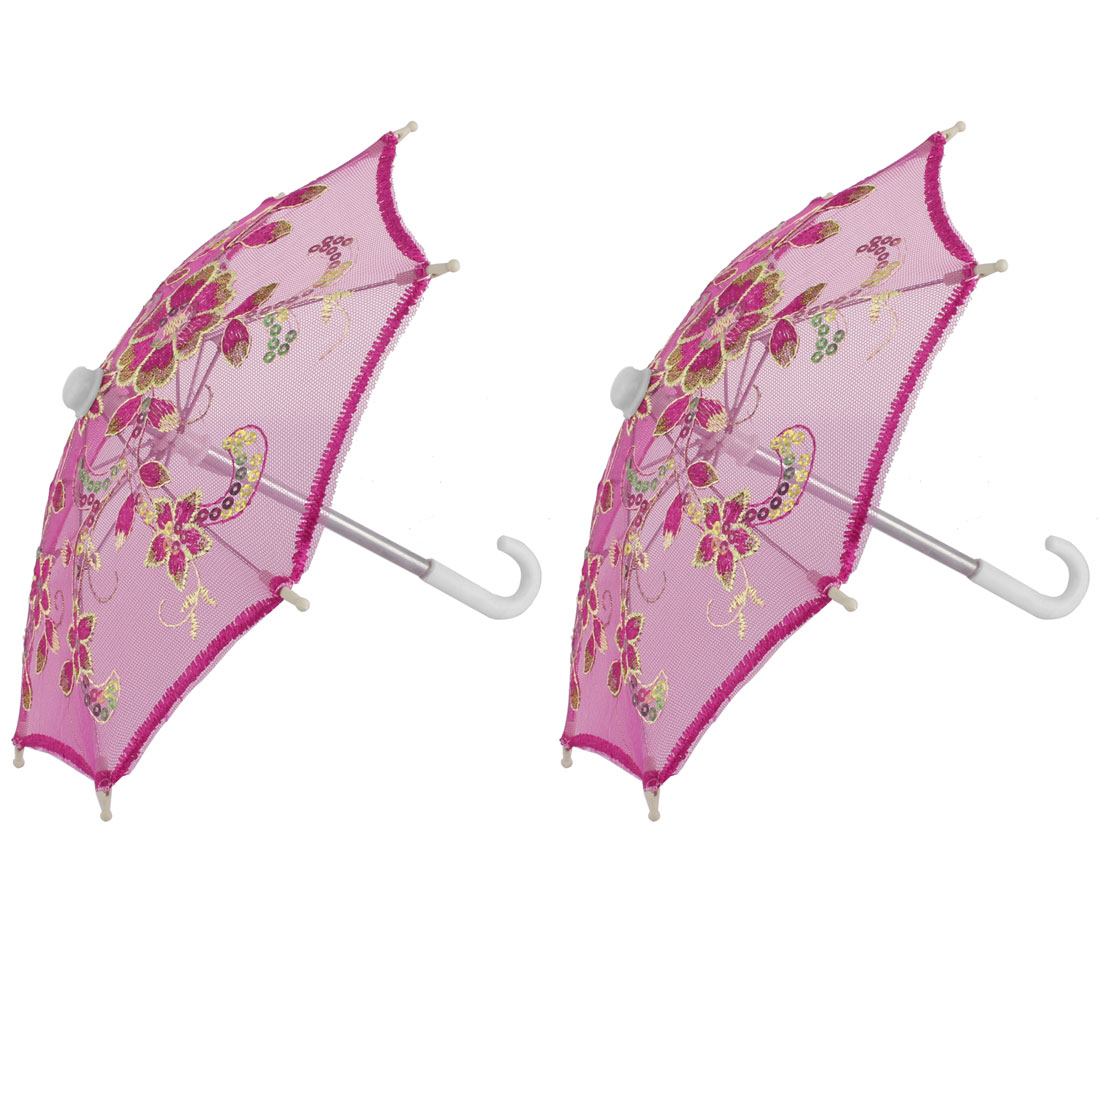 Outside Party Lace Floral Pattern Sequin Decor Handmade Folding Mini Umbrella 2pcs